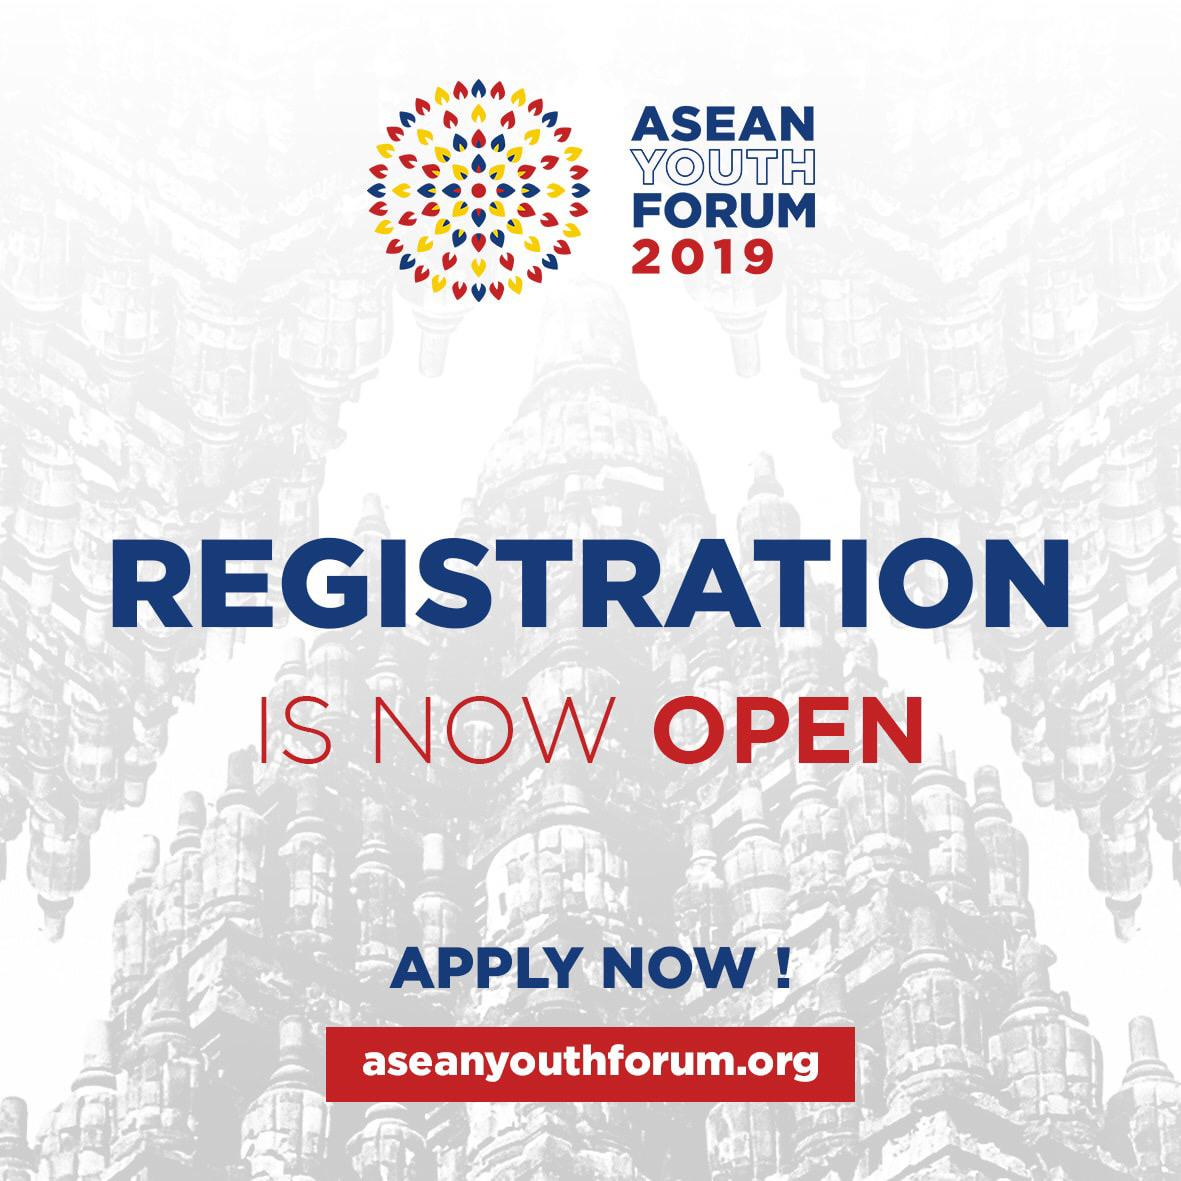 ASEAN Youth Forum 2019